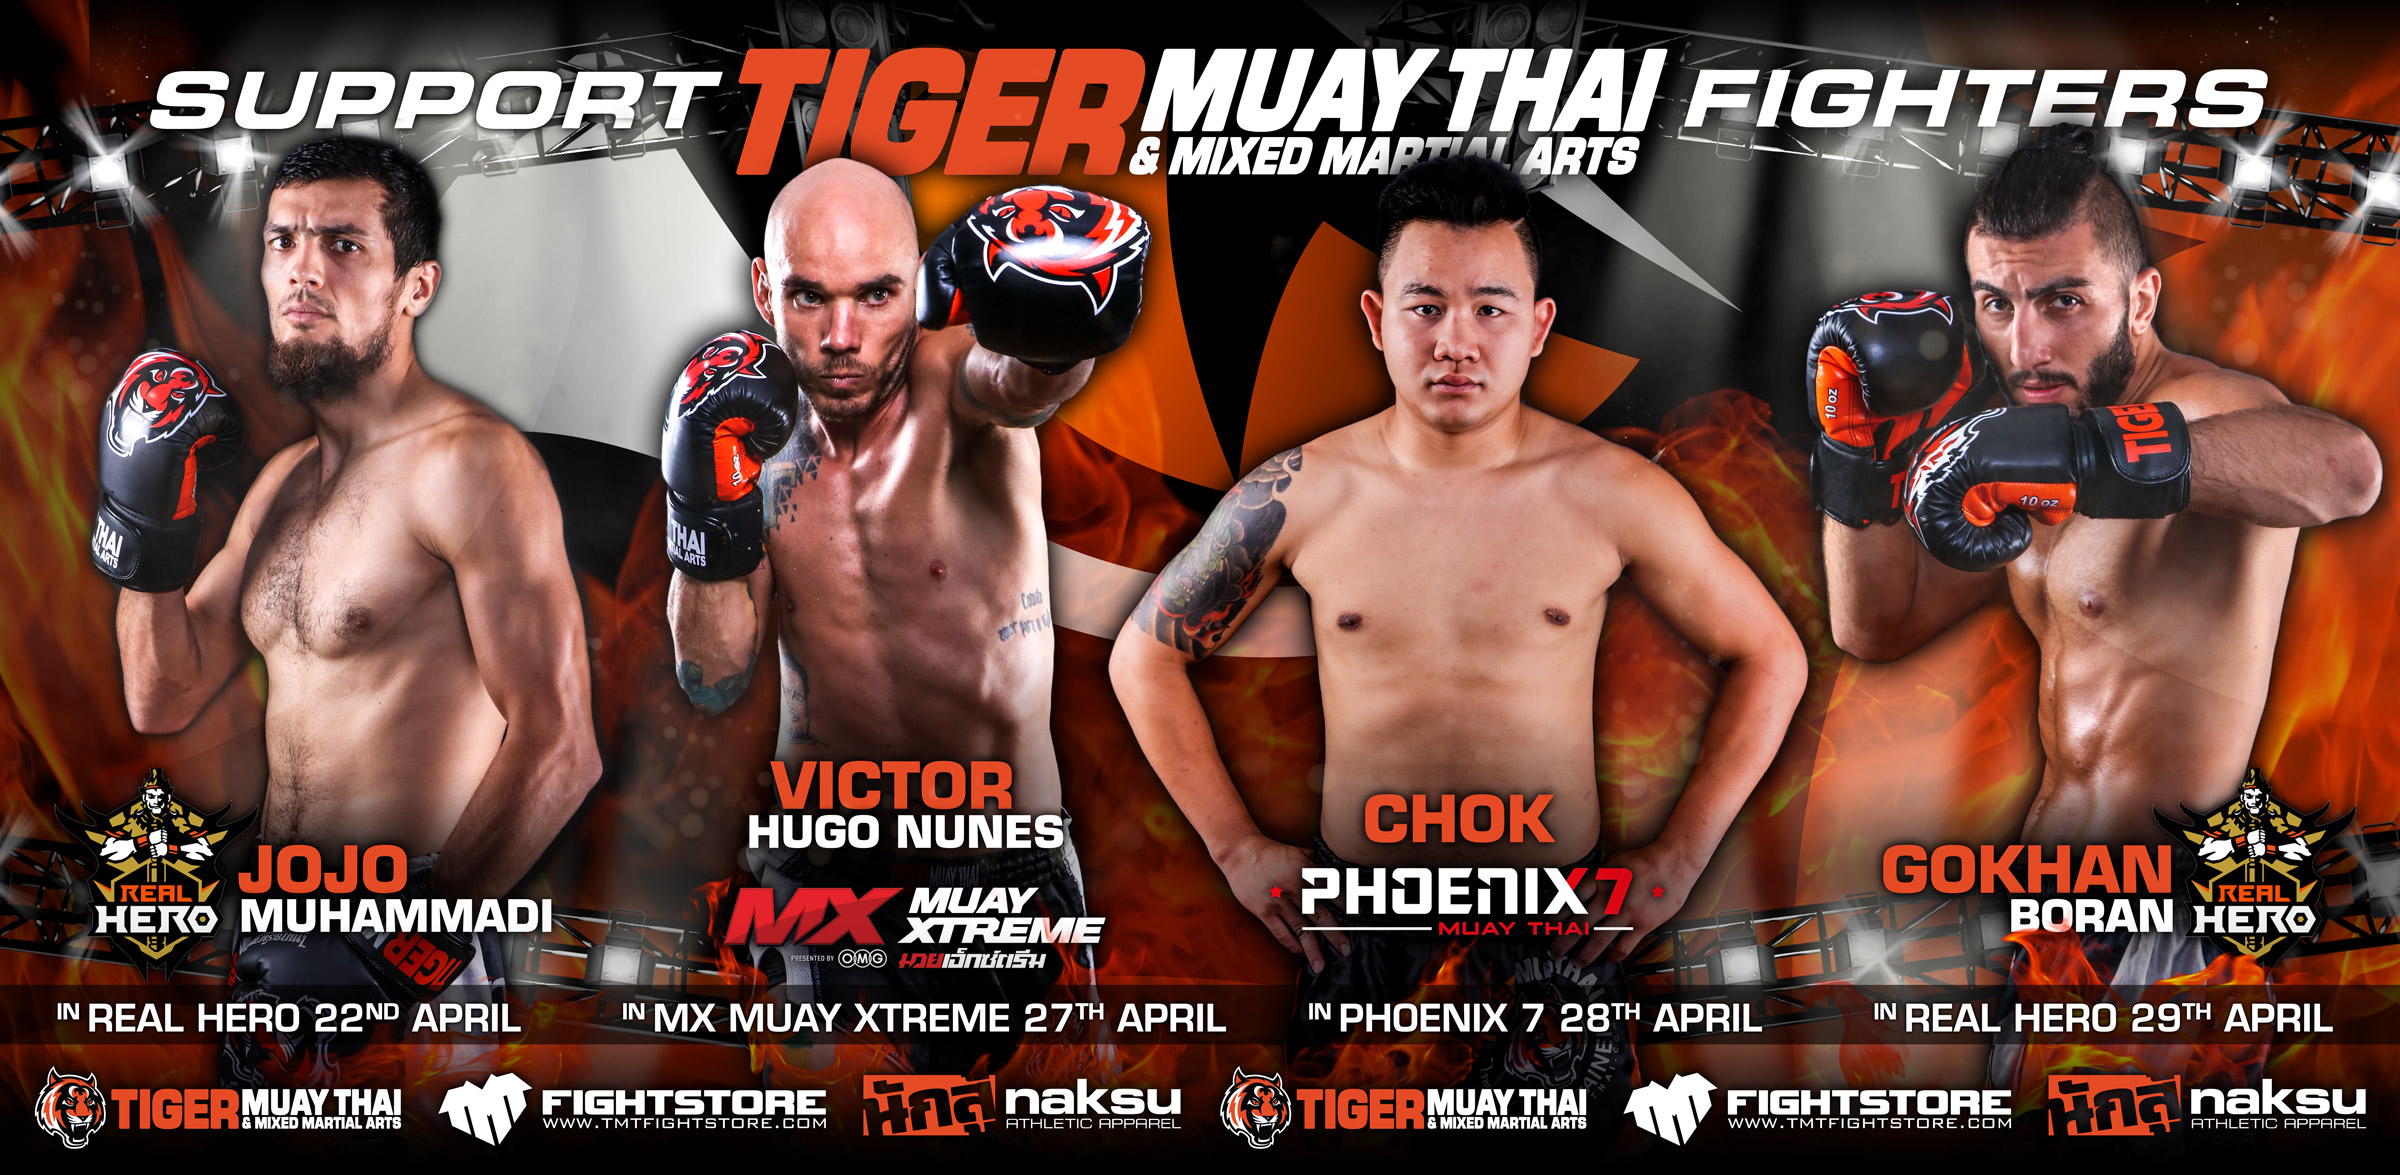 A Big Week ahead for our Muay Thai Fight Team! - Tiger Muay